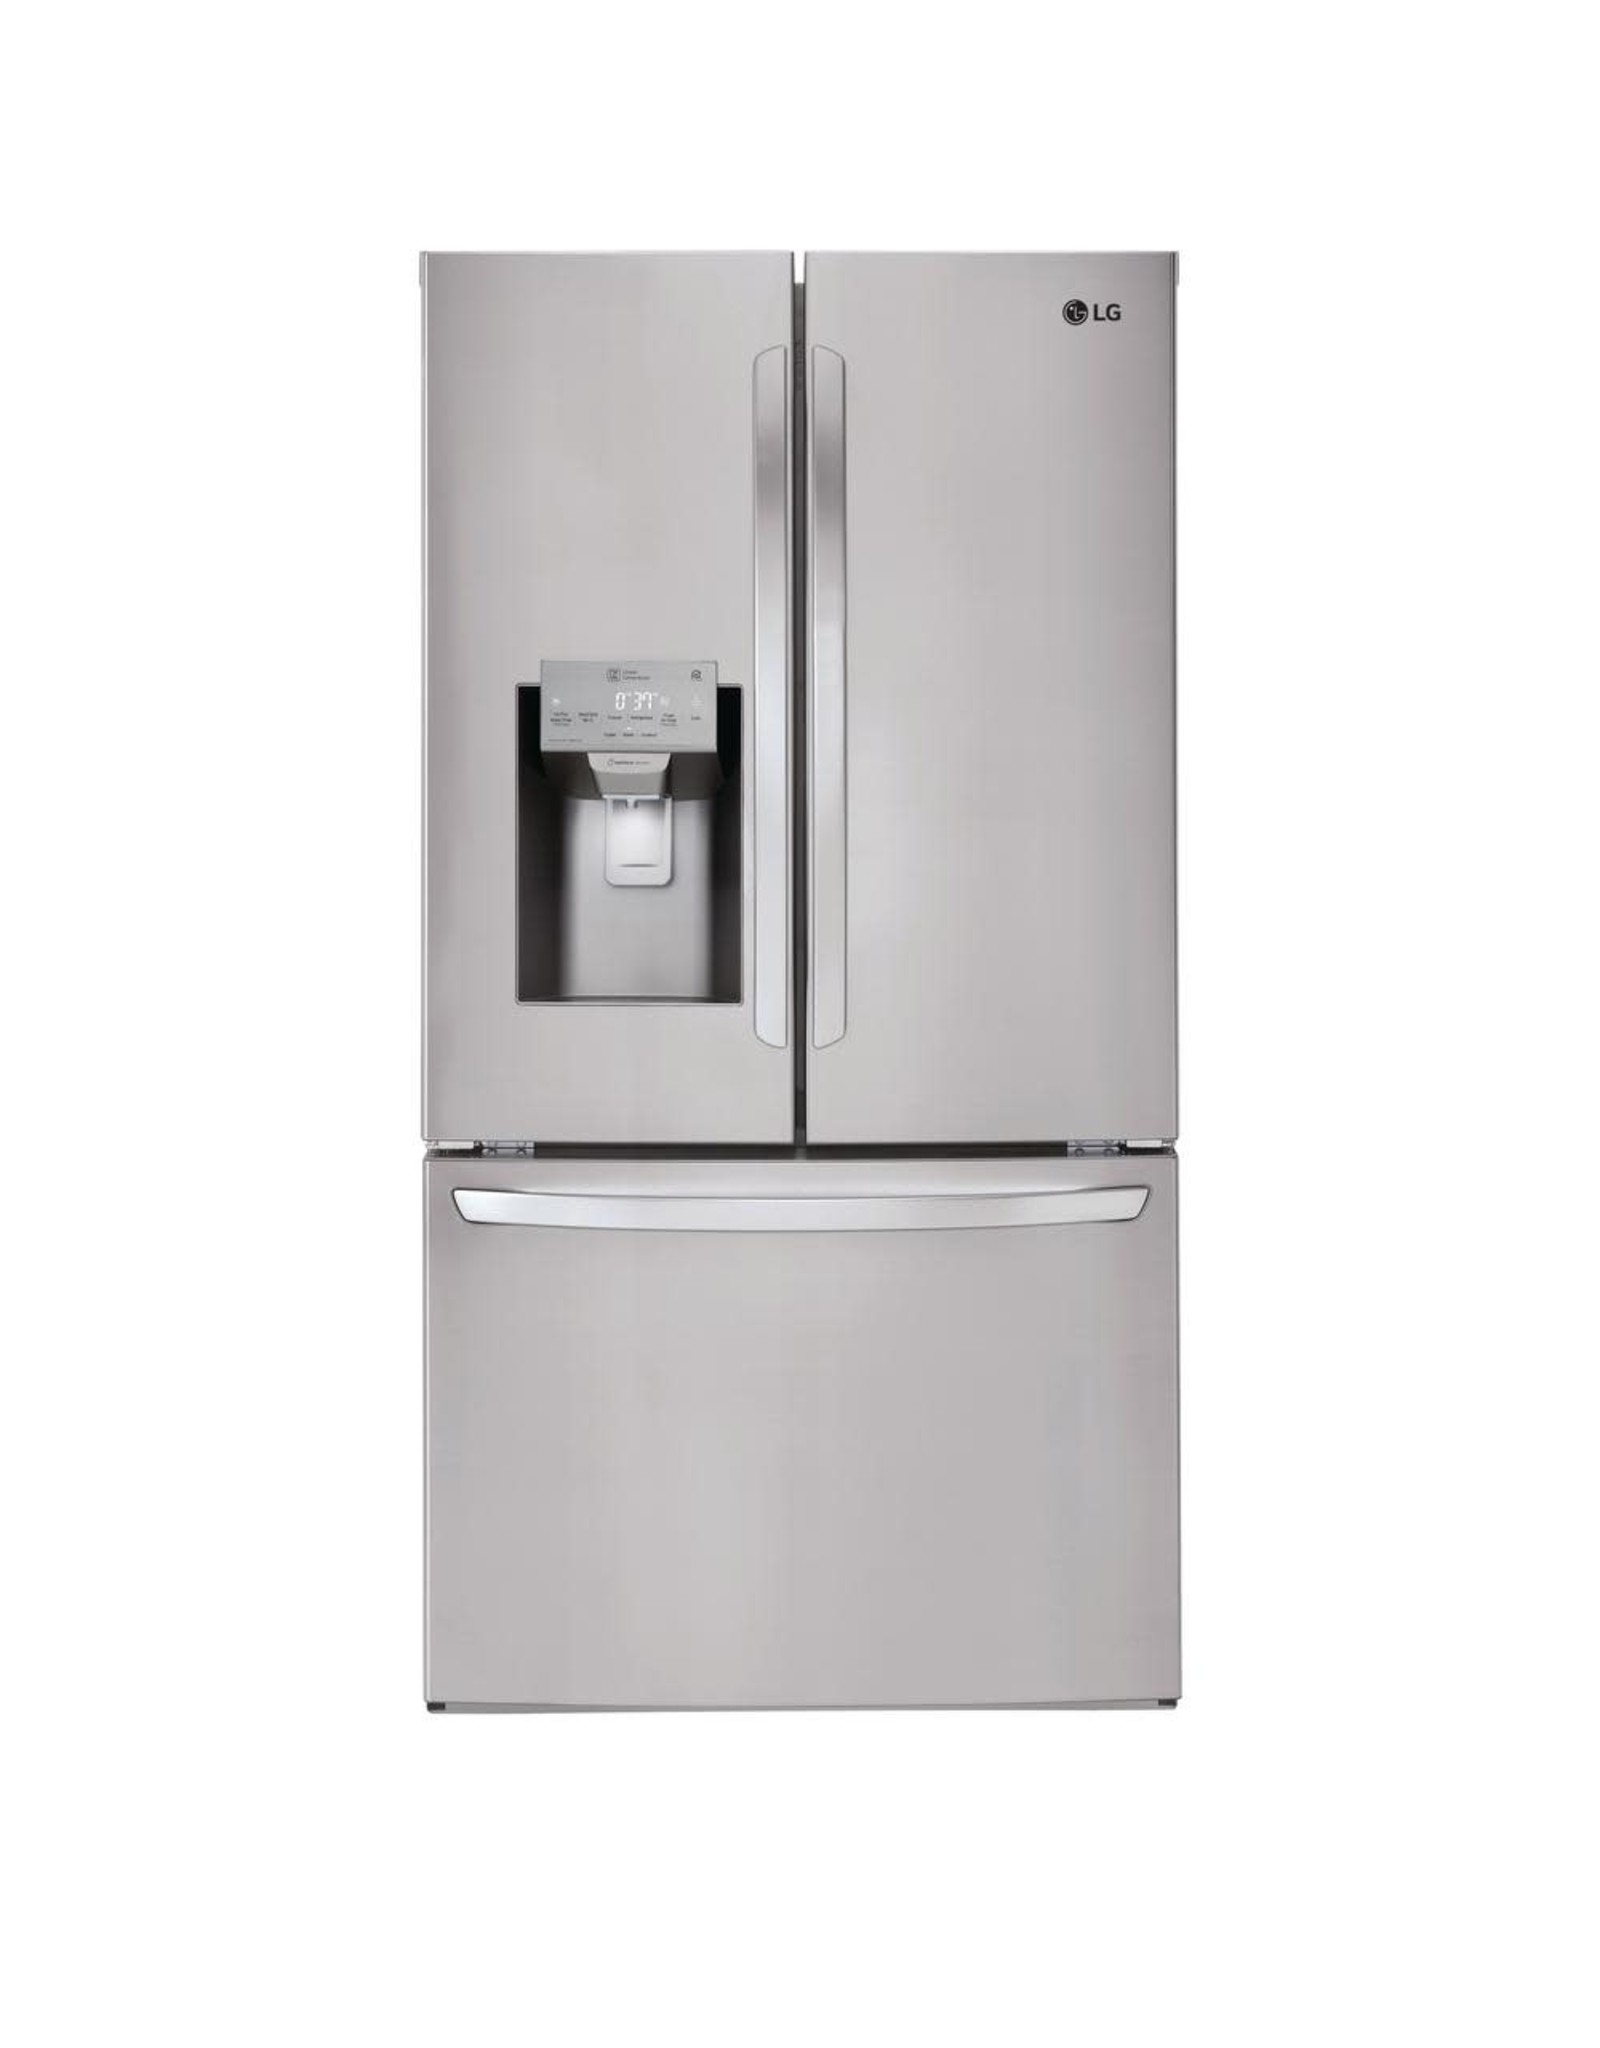 LG Electronics LFXS26973S 26.2 cu. ft. French Door Smart Refrigerator with Wi-Fi Enabled in Black Stainless Steel